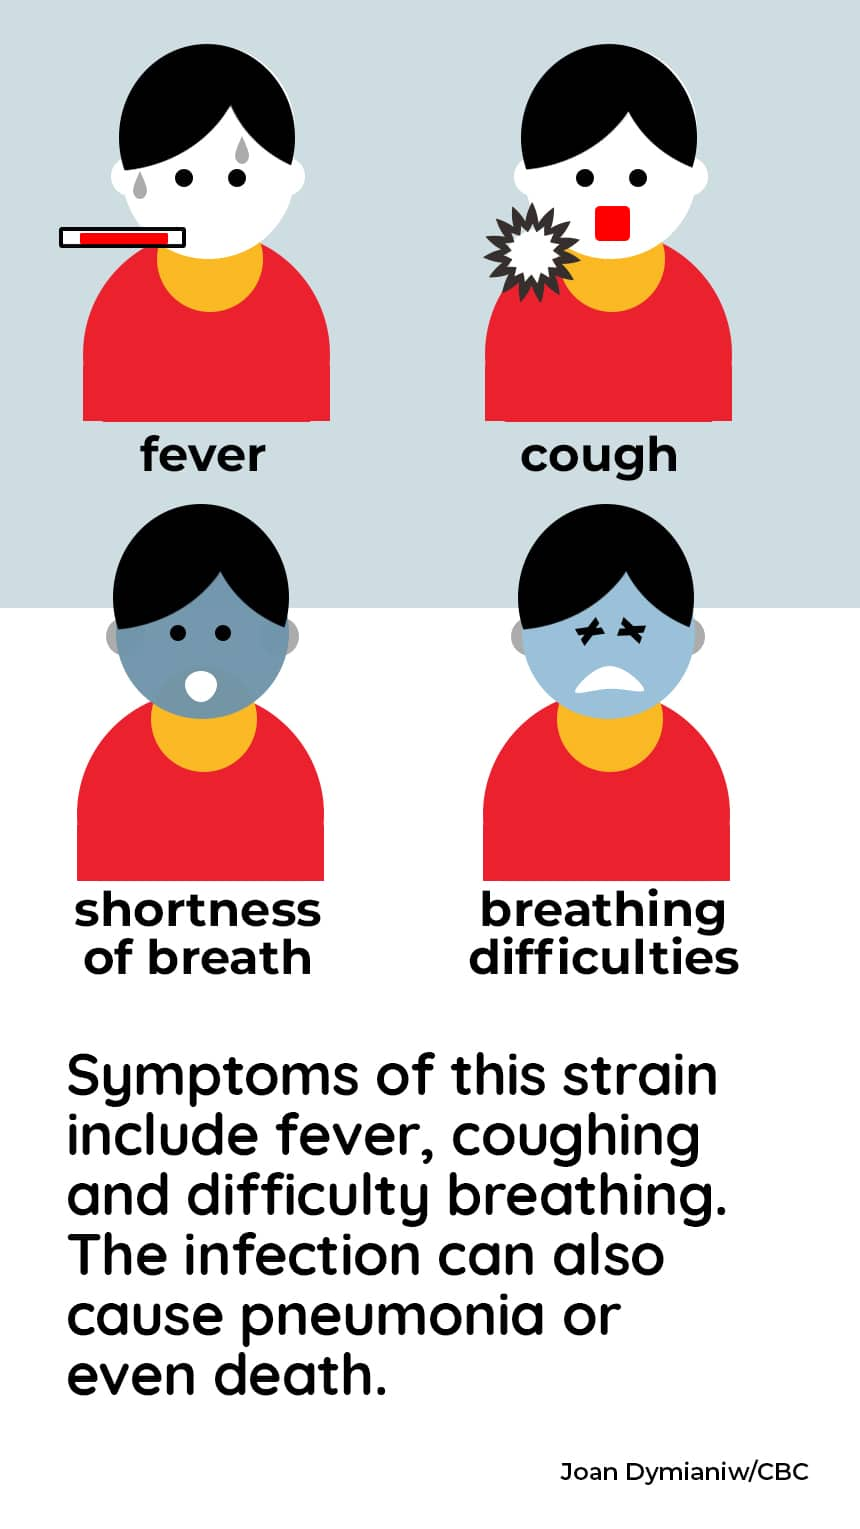 TEXT: Symptoms of this strain include fever, coughing and difficulty breathing. The infection can also cause pneumonia or even death. CREDIT: Joan Dymianiw/CBC